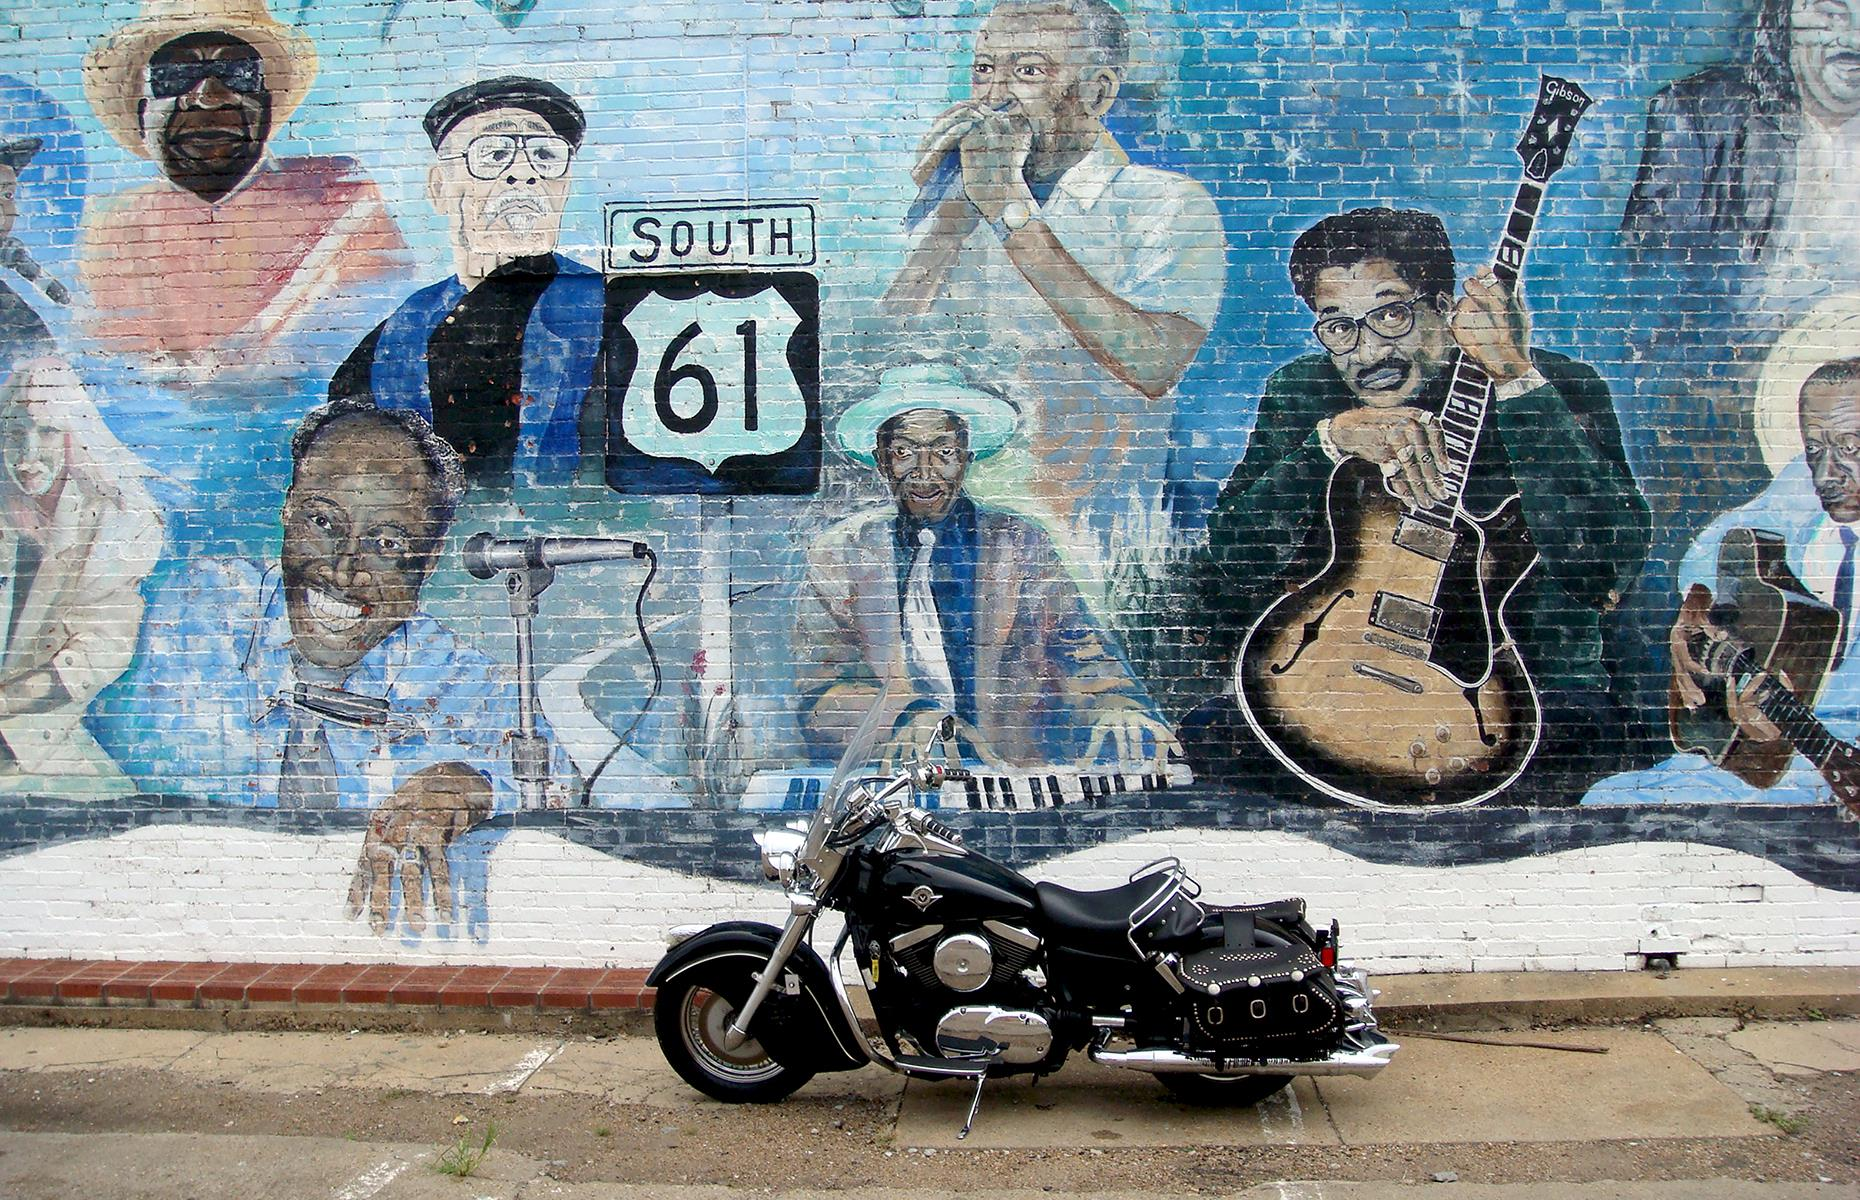 Slide 48 of 101: Beginning in Jackson, Mississippi's capital, this route explores some of the state's rich musical heritage, traveling as it does just over 200 miles (322km) on Highway 61, dubbed the Blues Highway. Though this music-rich journey involves under four hours on the road, most travelers spend a whole long weekend soaking up the sights and sounds of the trail. Vicksburg, where drivers can join the Blues Highway, lies around 45 minutes west of Jackson.